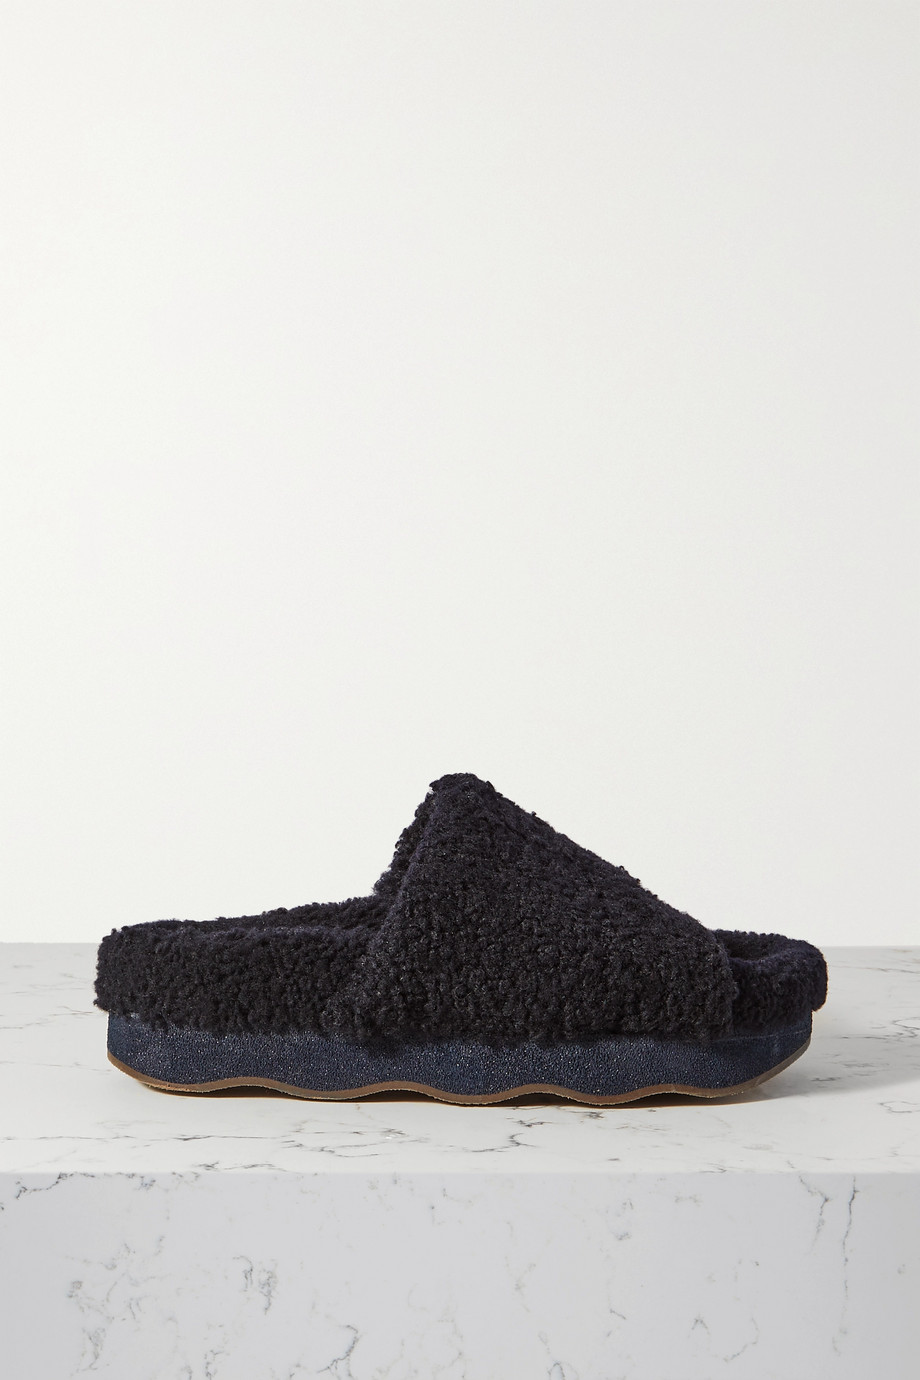 Chloé Wavy shearing and leather slides